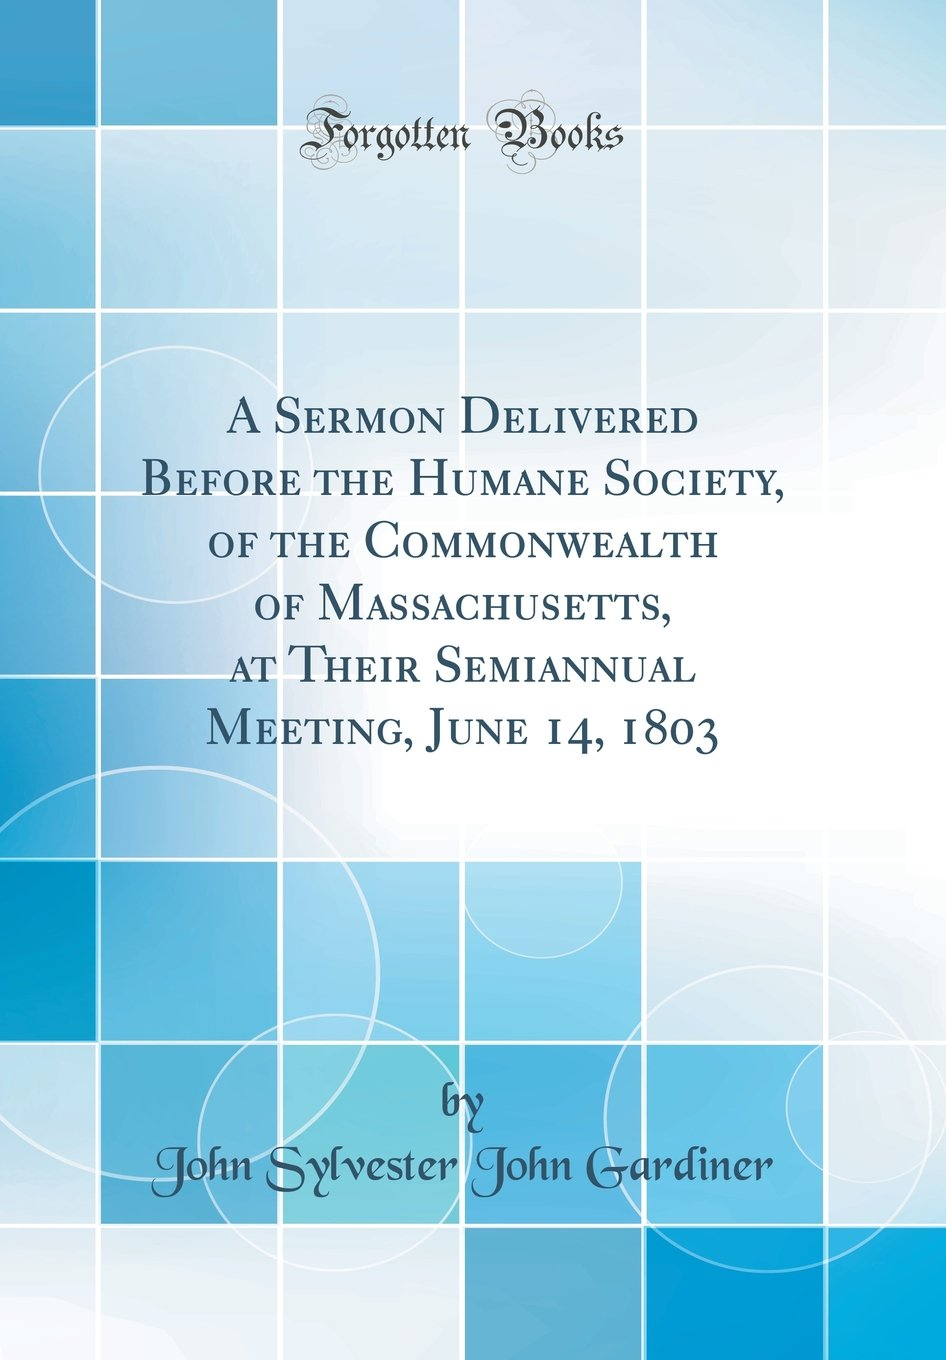 A Sermon Delivered Before the Humane Society, of the Commonwealth of Massachusetts, at Their Semiannual Meeting, June 14, 1803 (Classic Reprint) PDF